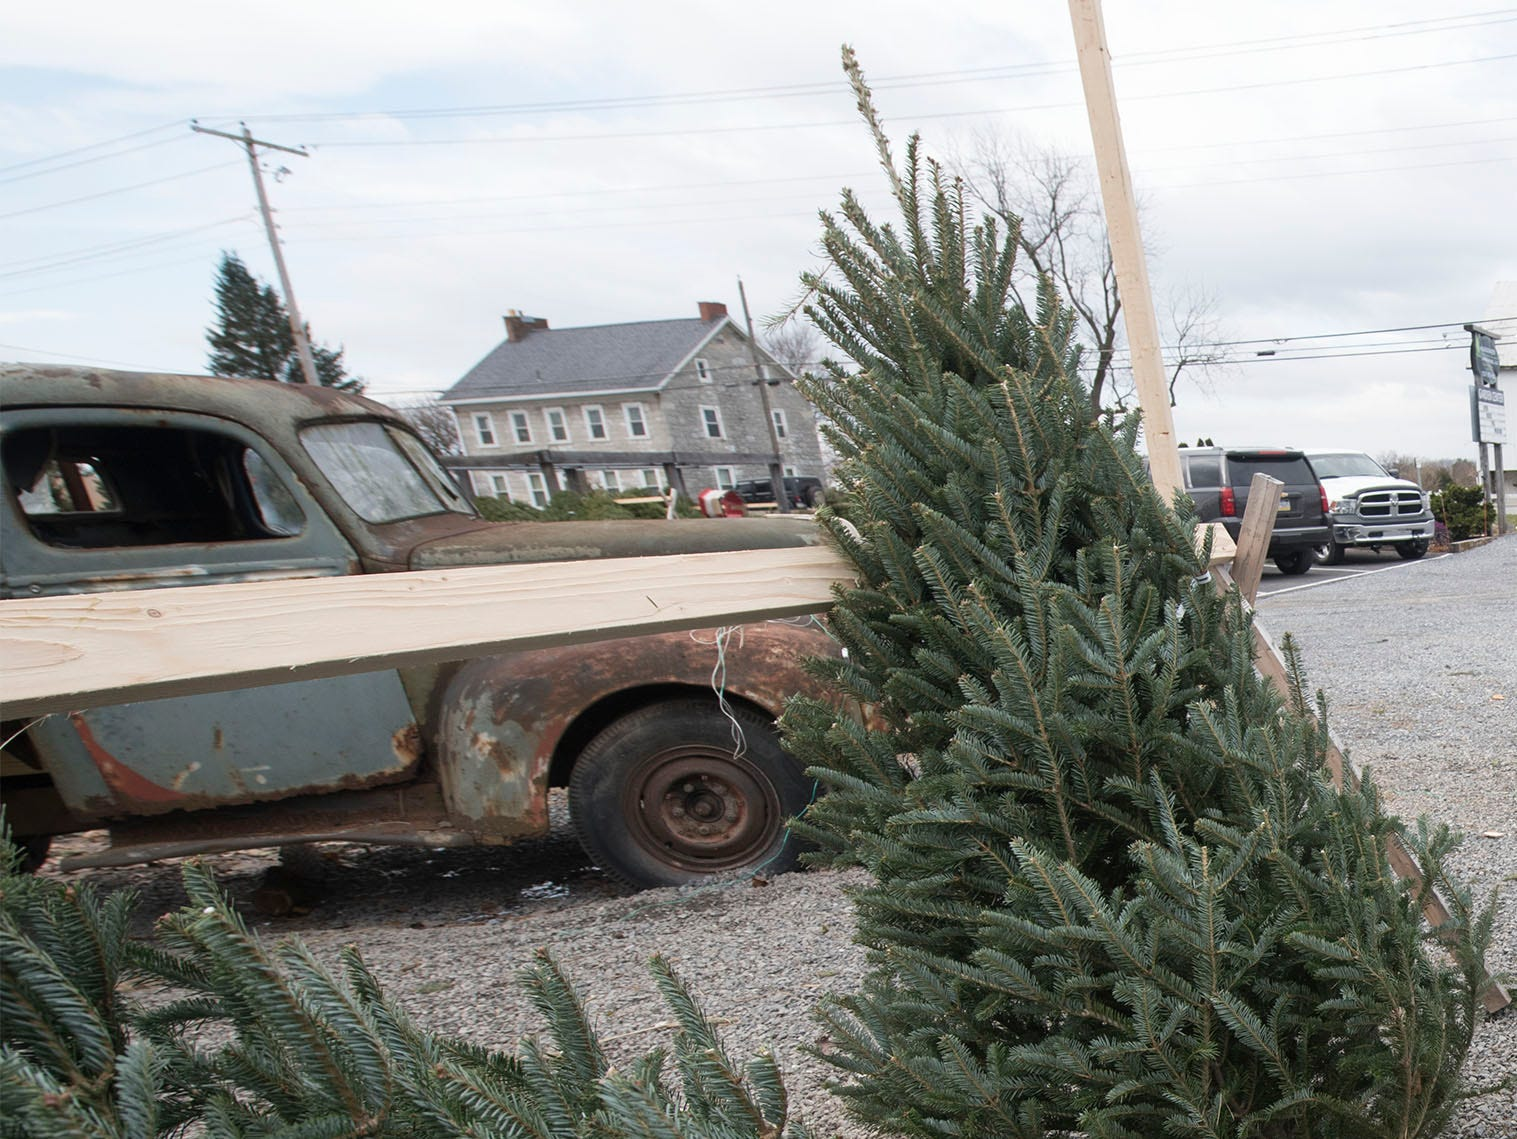 Klenzing Landscaping, LLC, 2922 Molly Pitcher Highway, Chambersburg, sells Christmas trees as seen Wednesday, Nov. 28, 2018. Klenzing's carries a variety of trees during the holiday season.